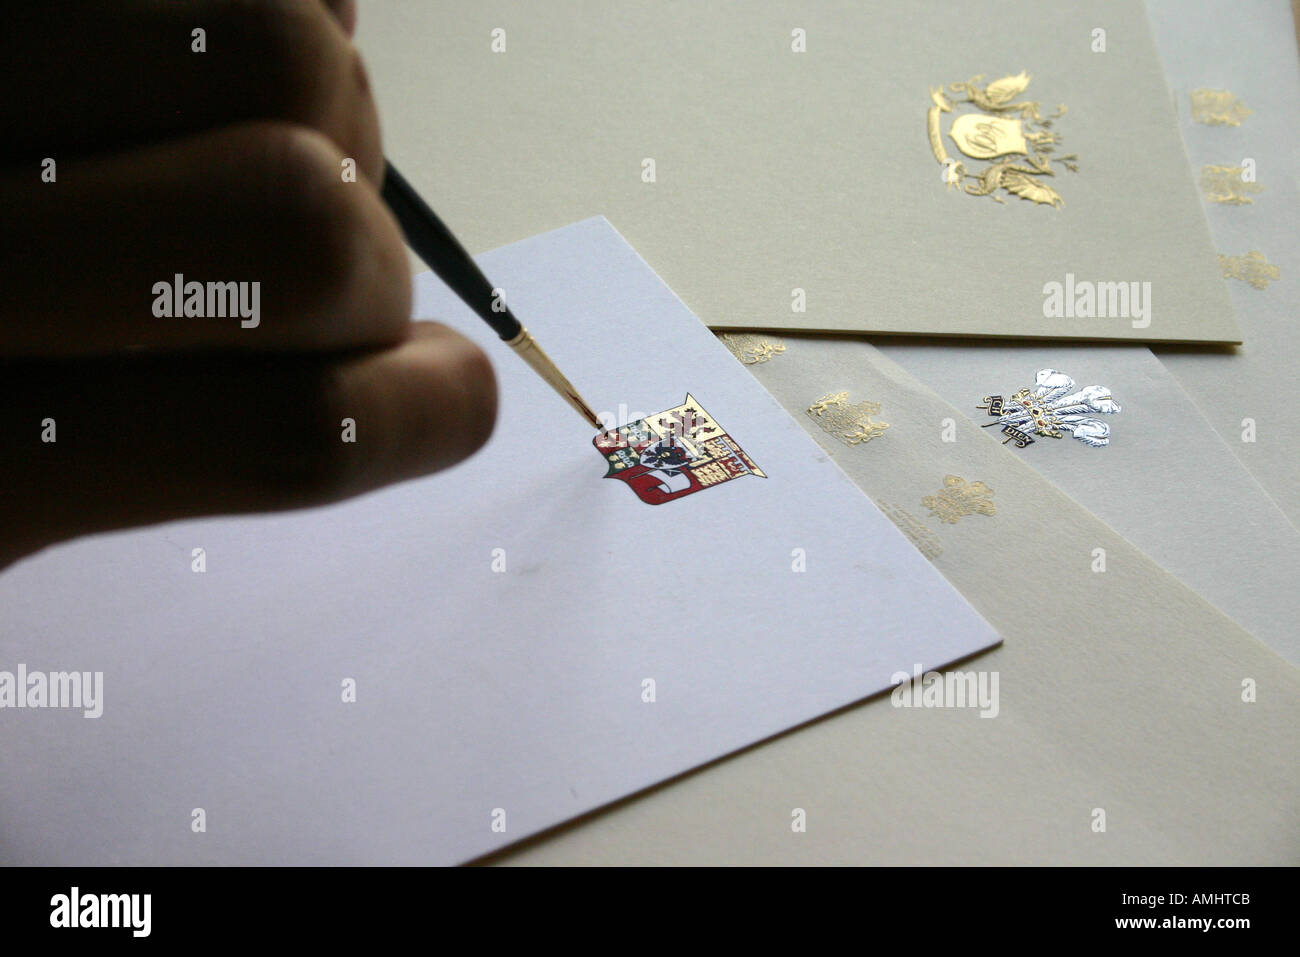 Printing heraldry on stationery - Stock Image